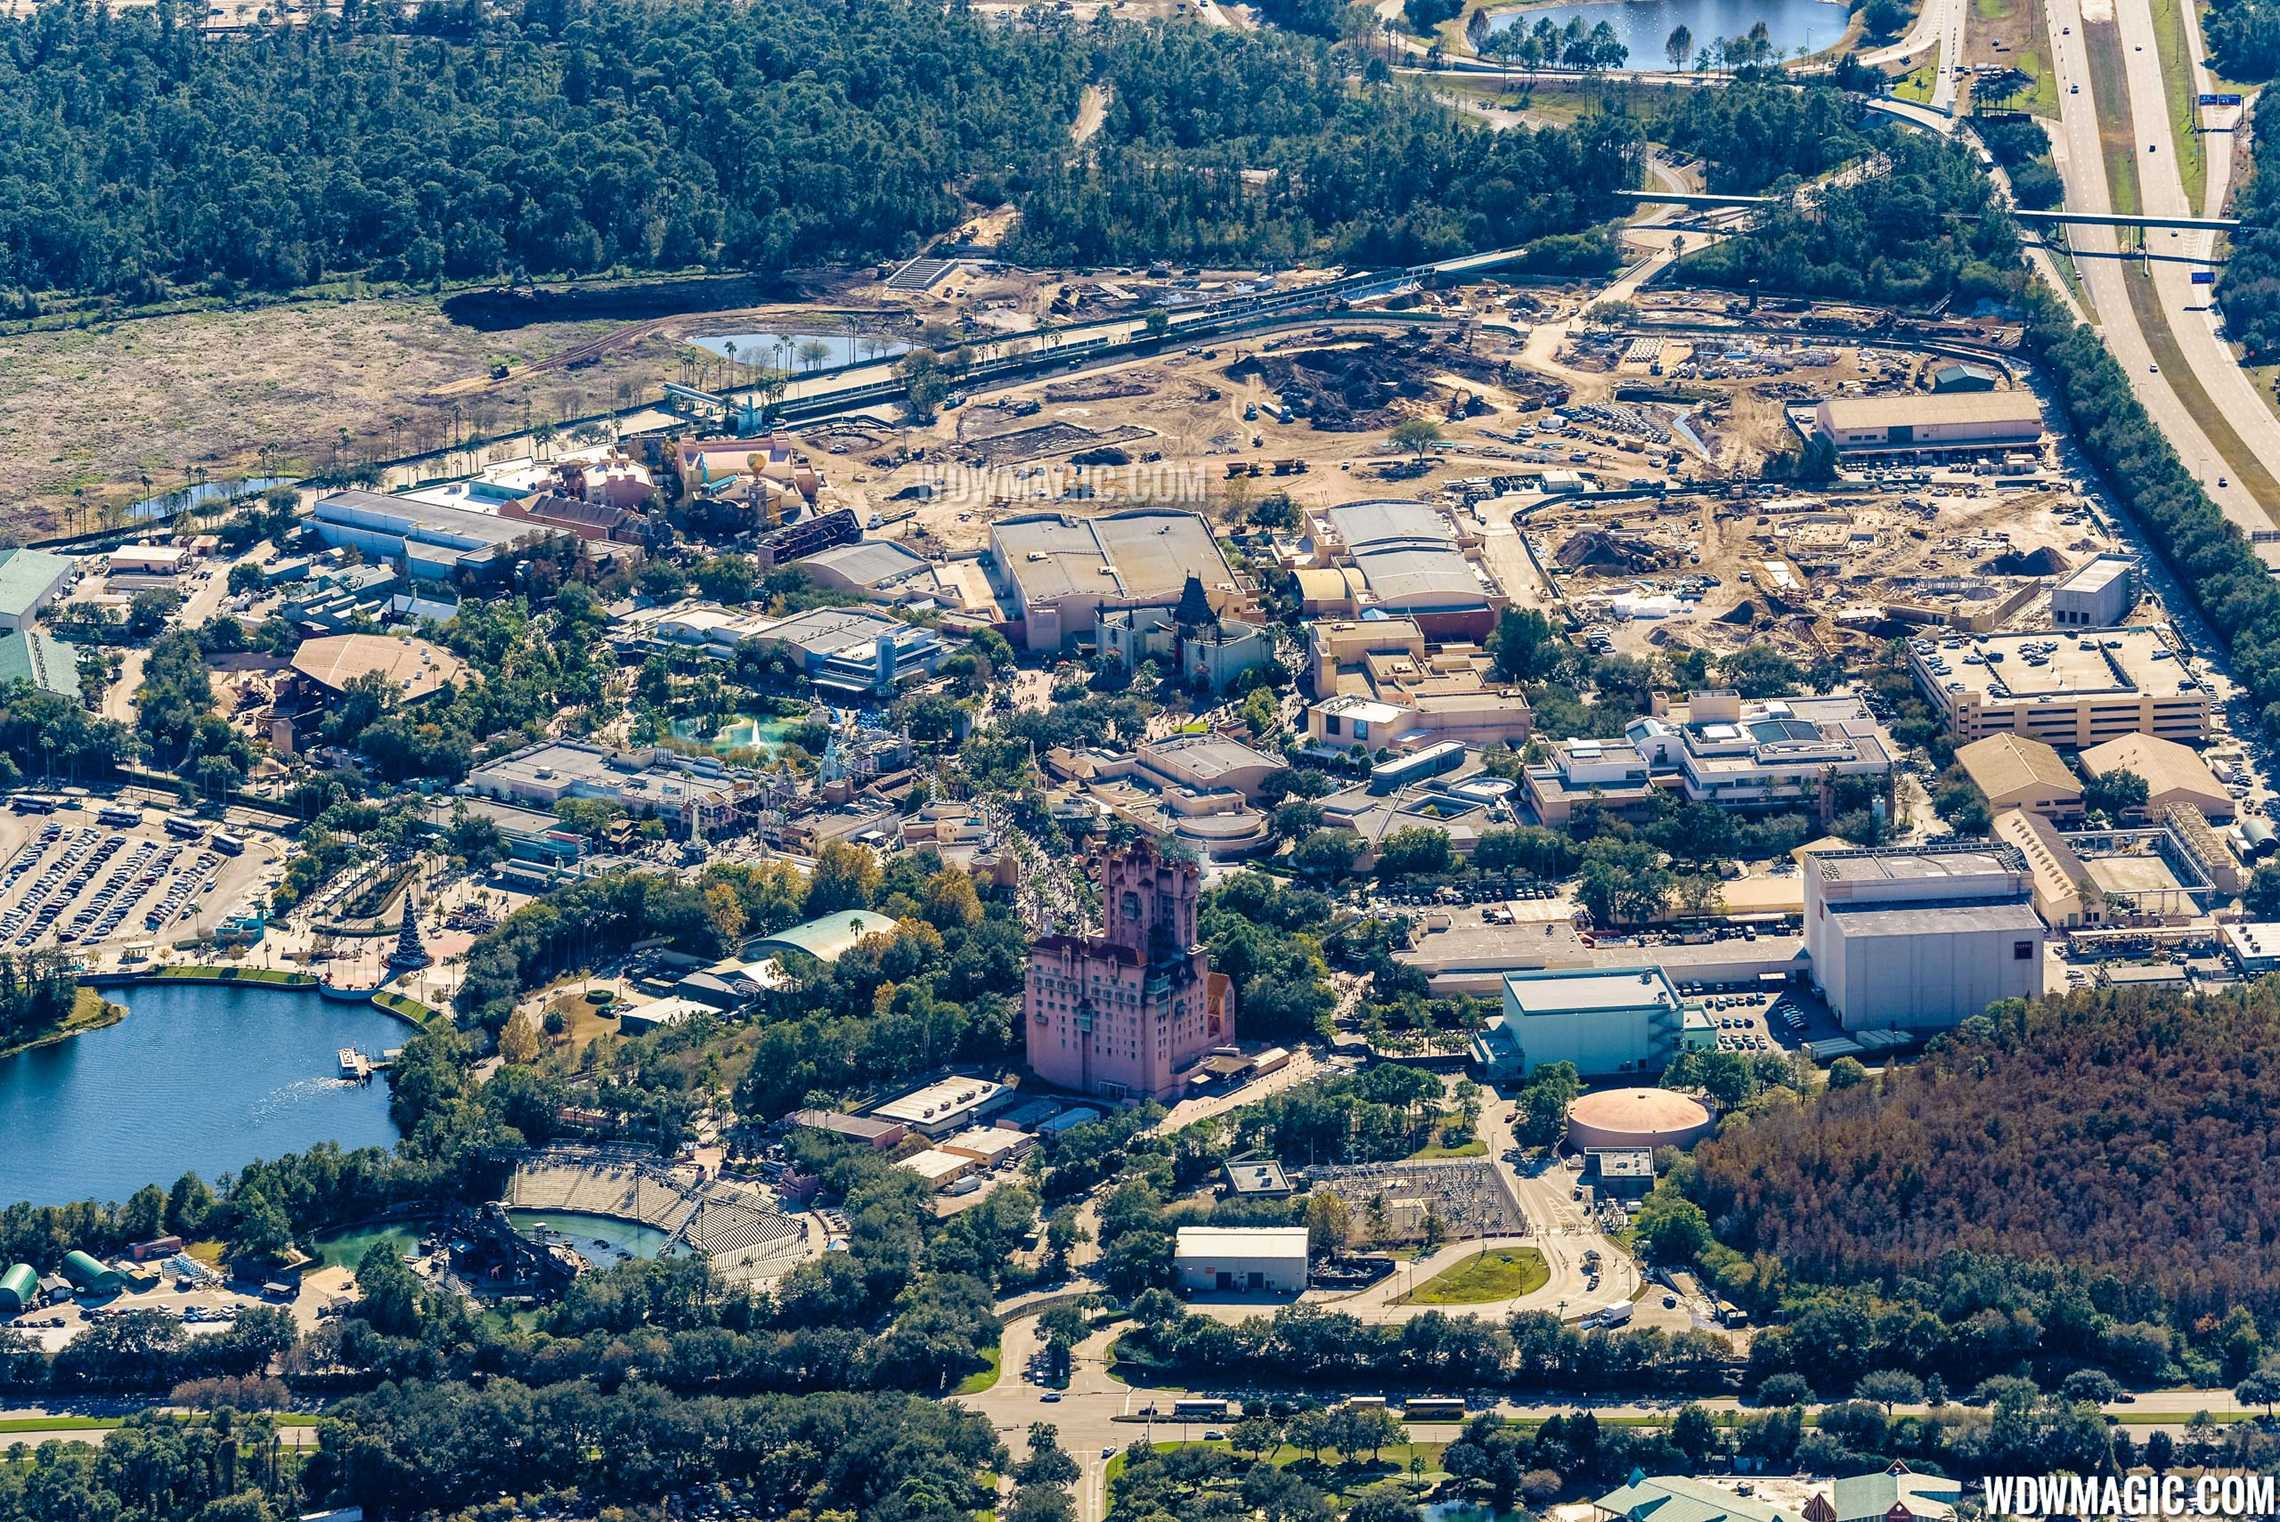 Photo by CJ Berzin @BerzinPhotography. Star Wars Land has the luxury of space to expand beyond just a theme-park land.